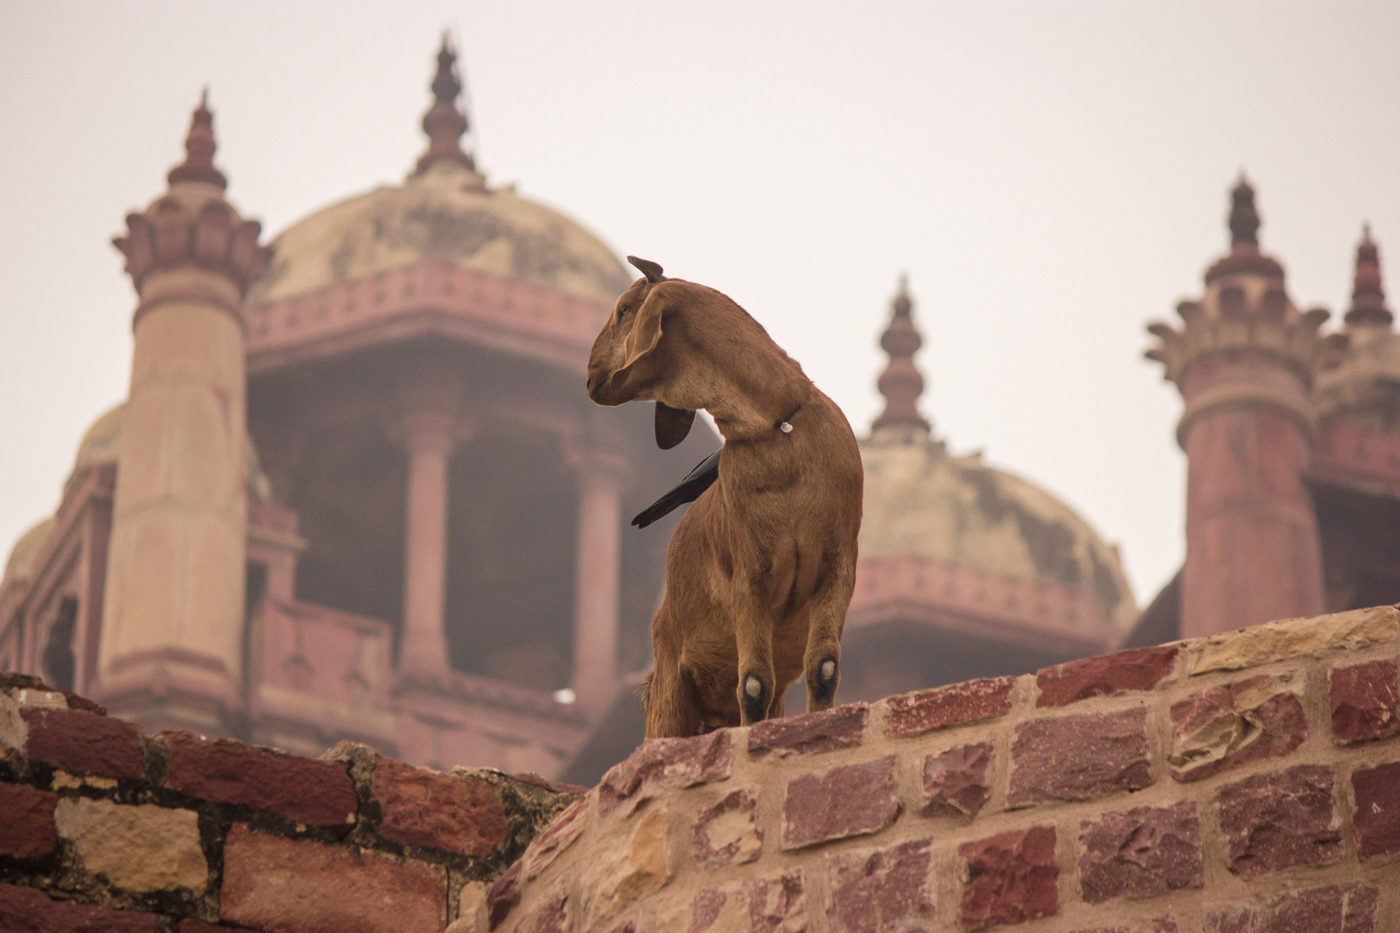 Goat standing on a rooftop at the Fatehpur Sikri in Agra, India.